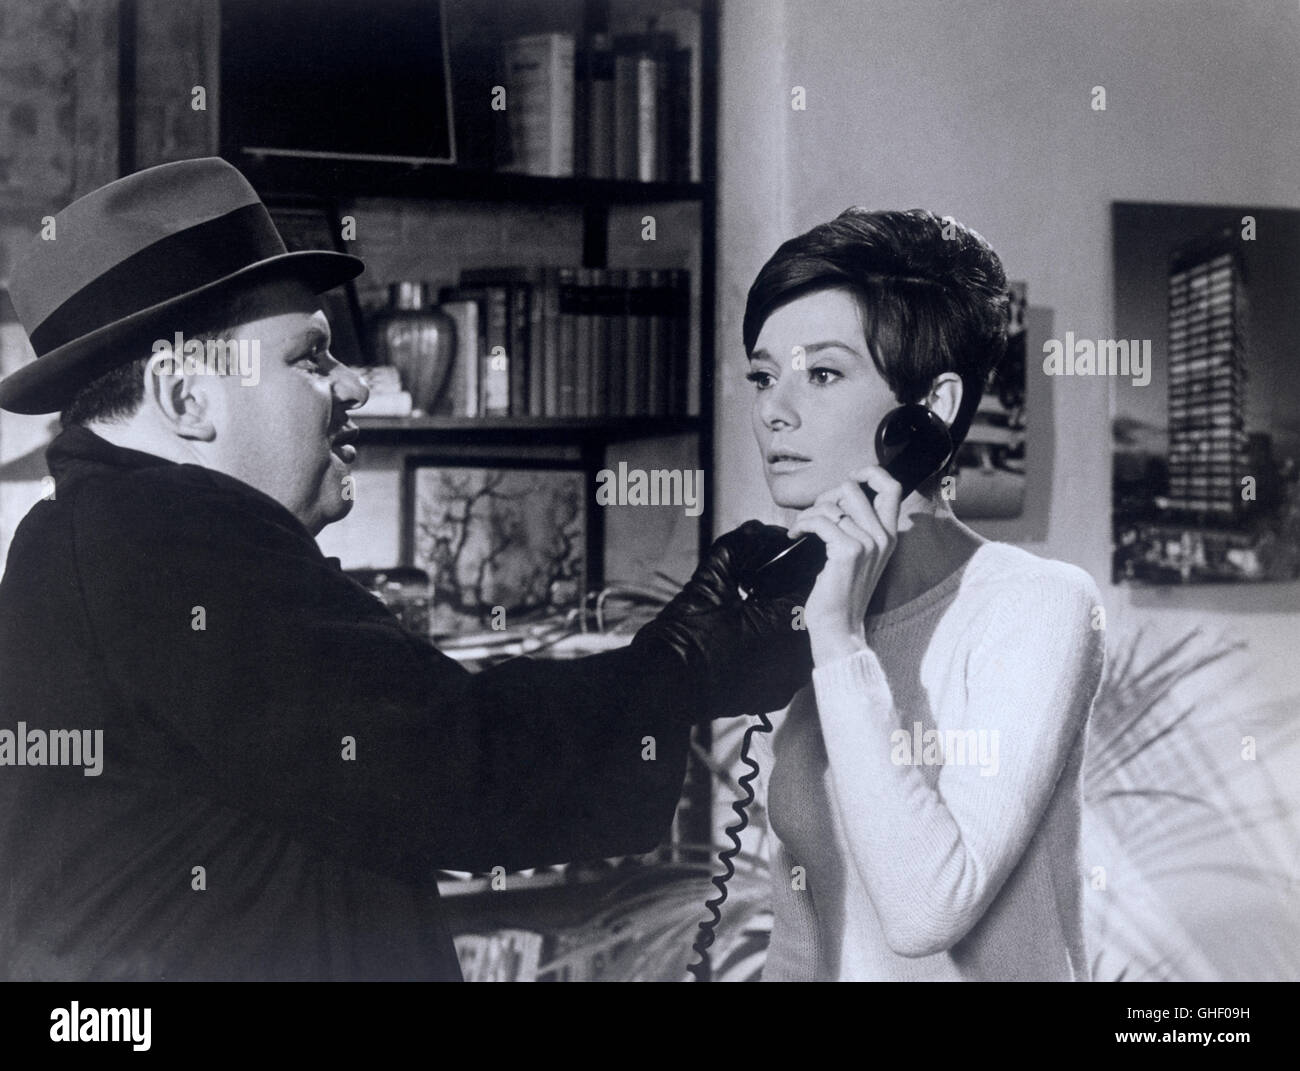 WAIT UNTIL DARK USA 1967 Terence Young JACK WESTON as Carlino, AUDREY HEPBURN as blind Susy Hendrix on the phone. - Stock Image